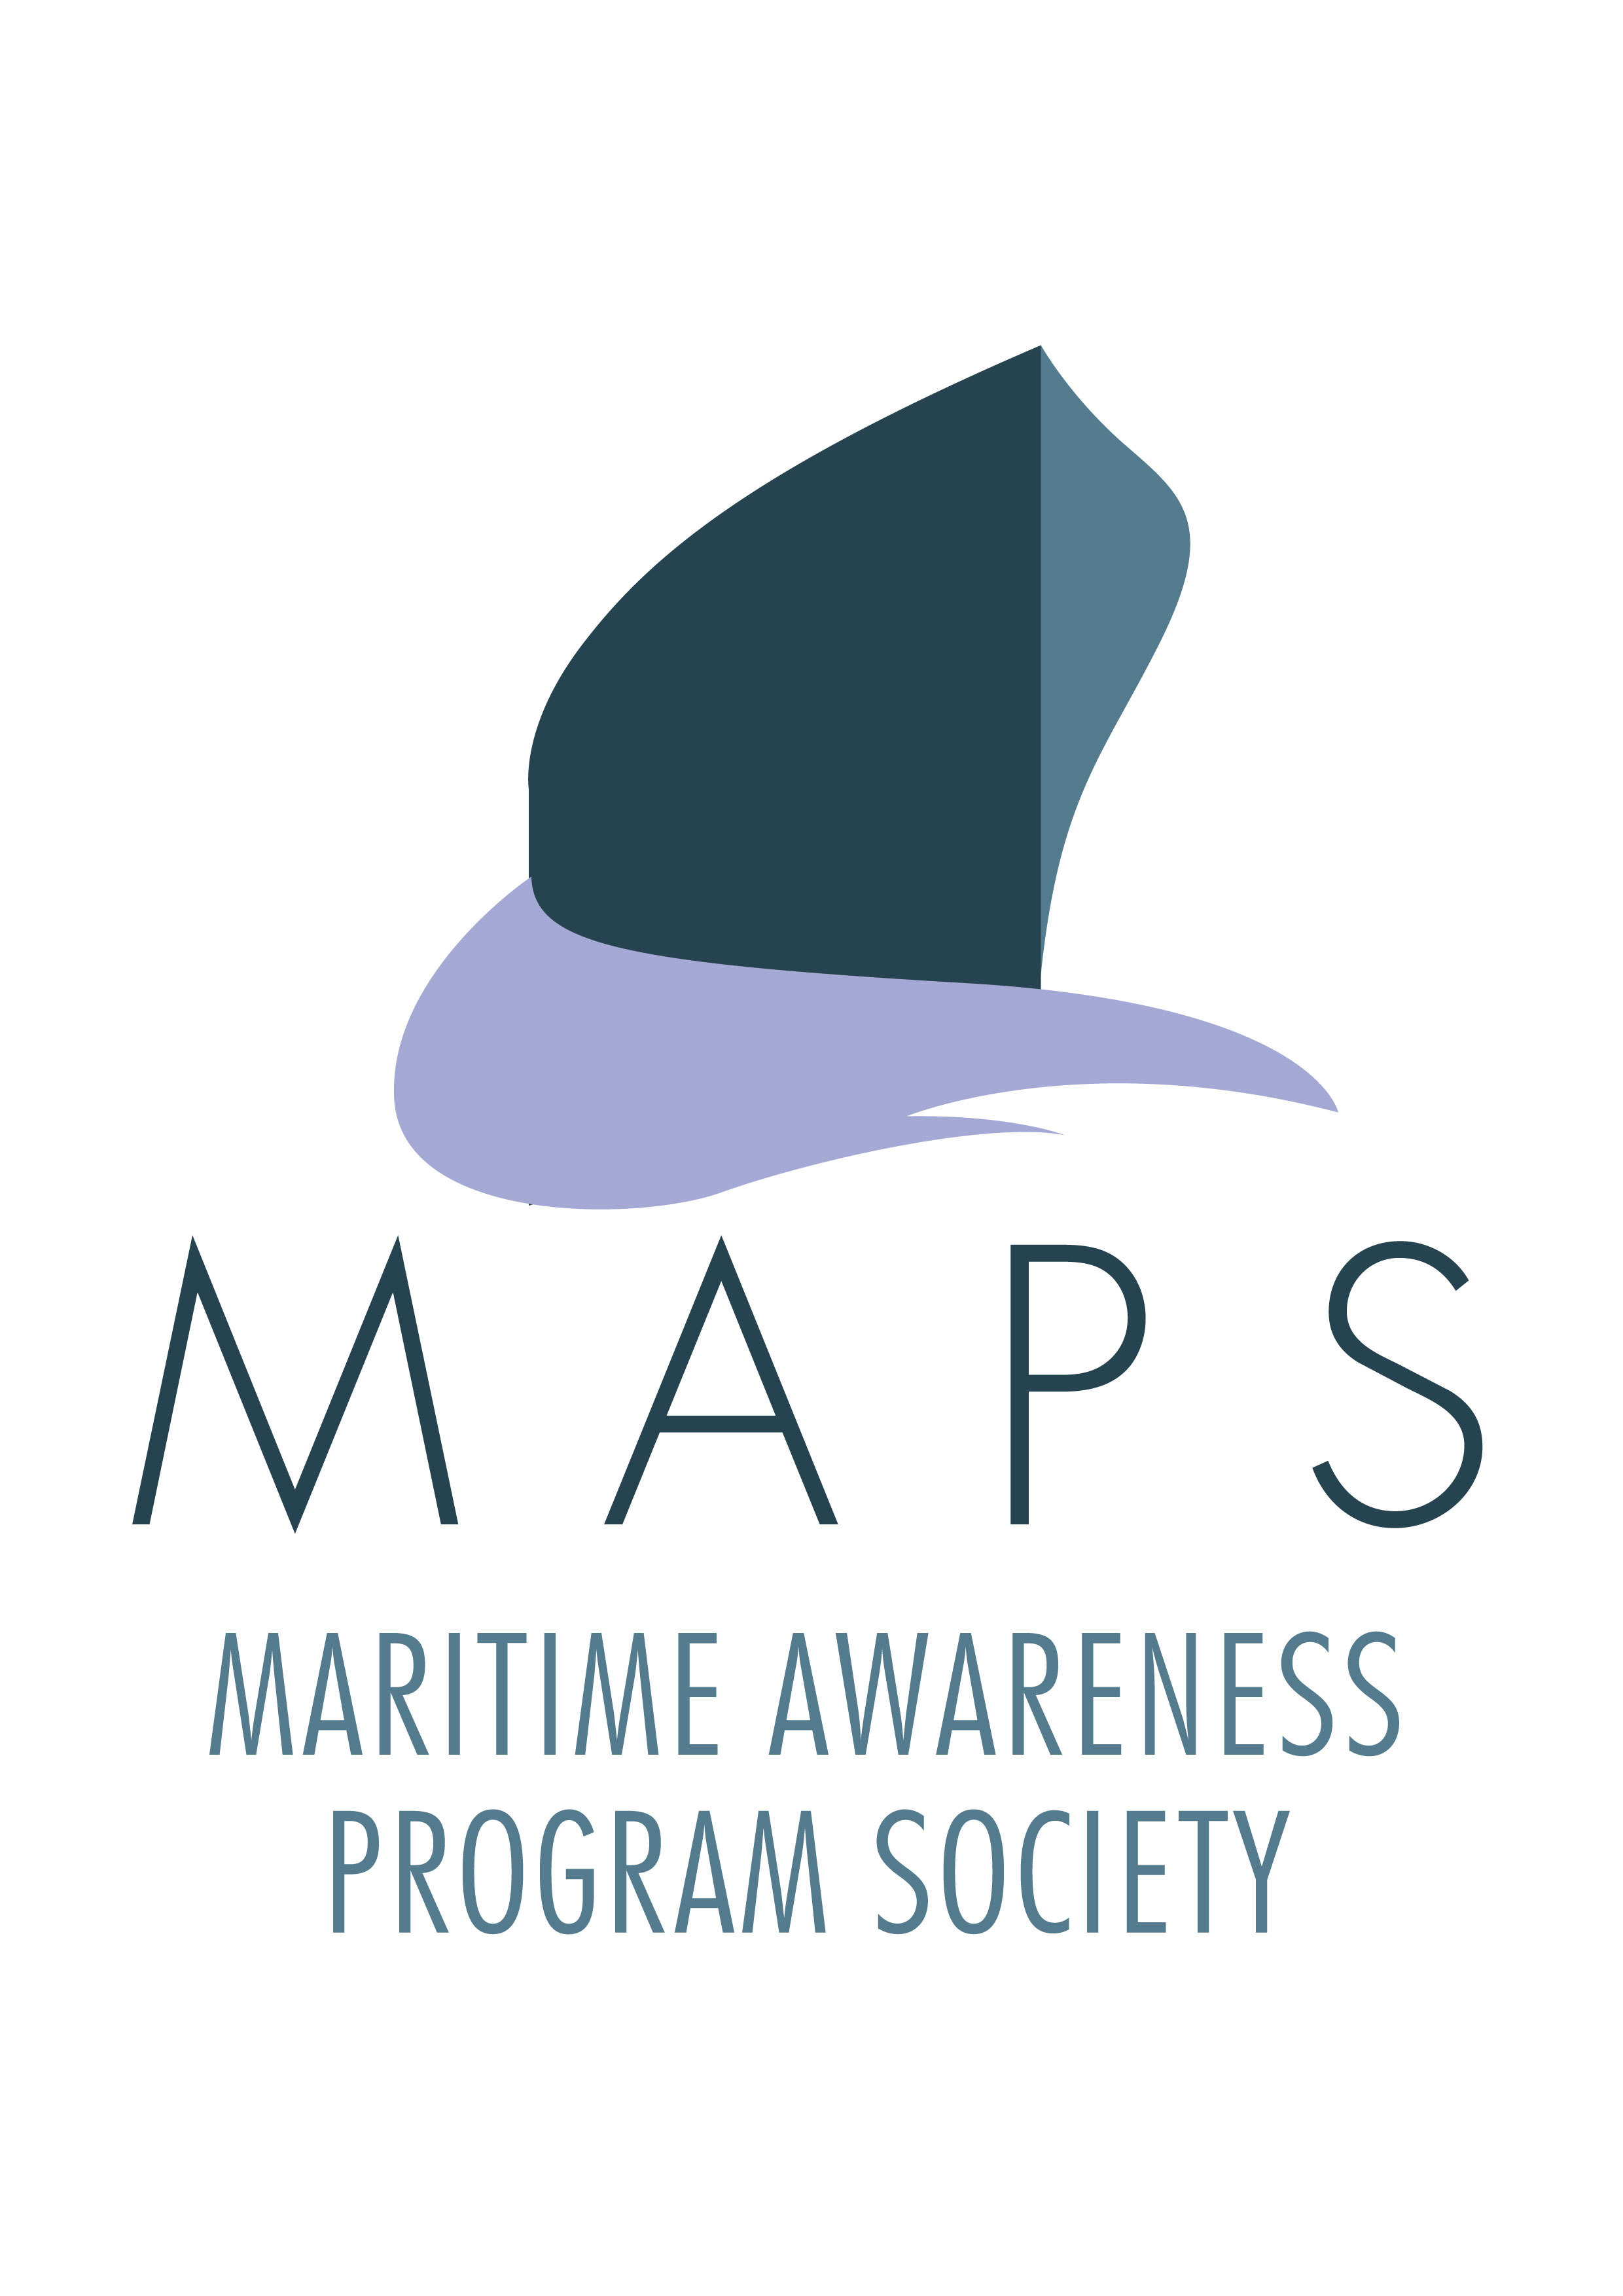 Maritime Awareness Program Society